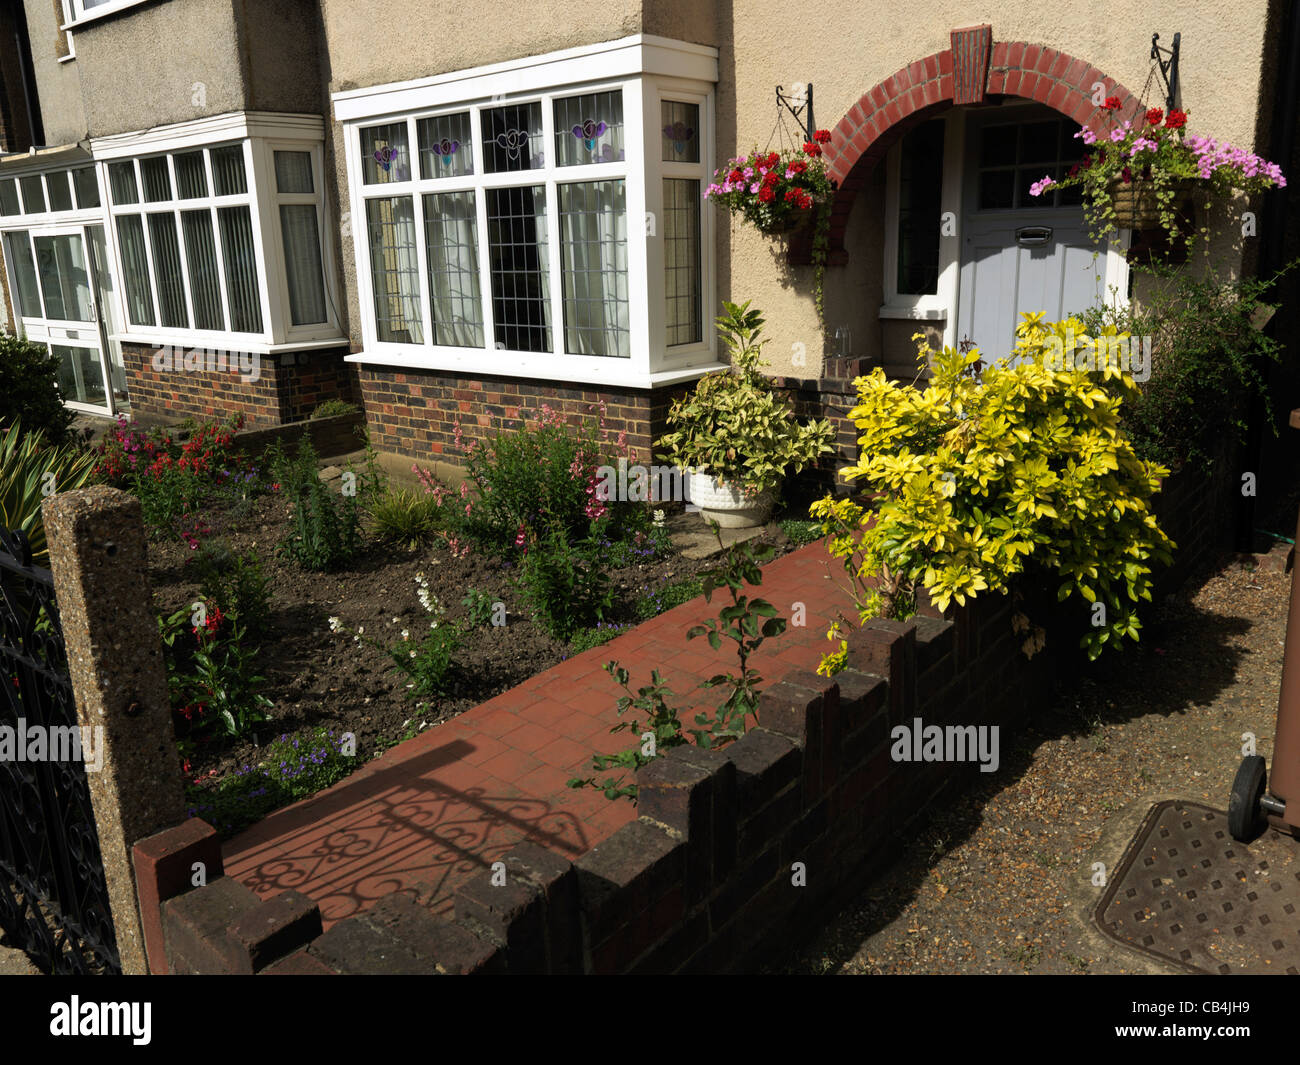 Plants And Flowers In Front Garden Of Semi Detached House England Stock Photo Alamy